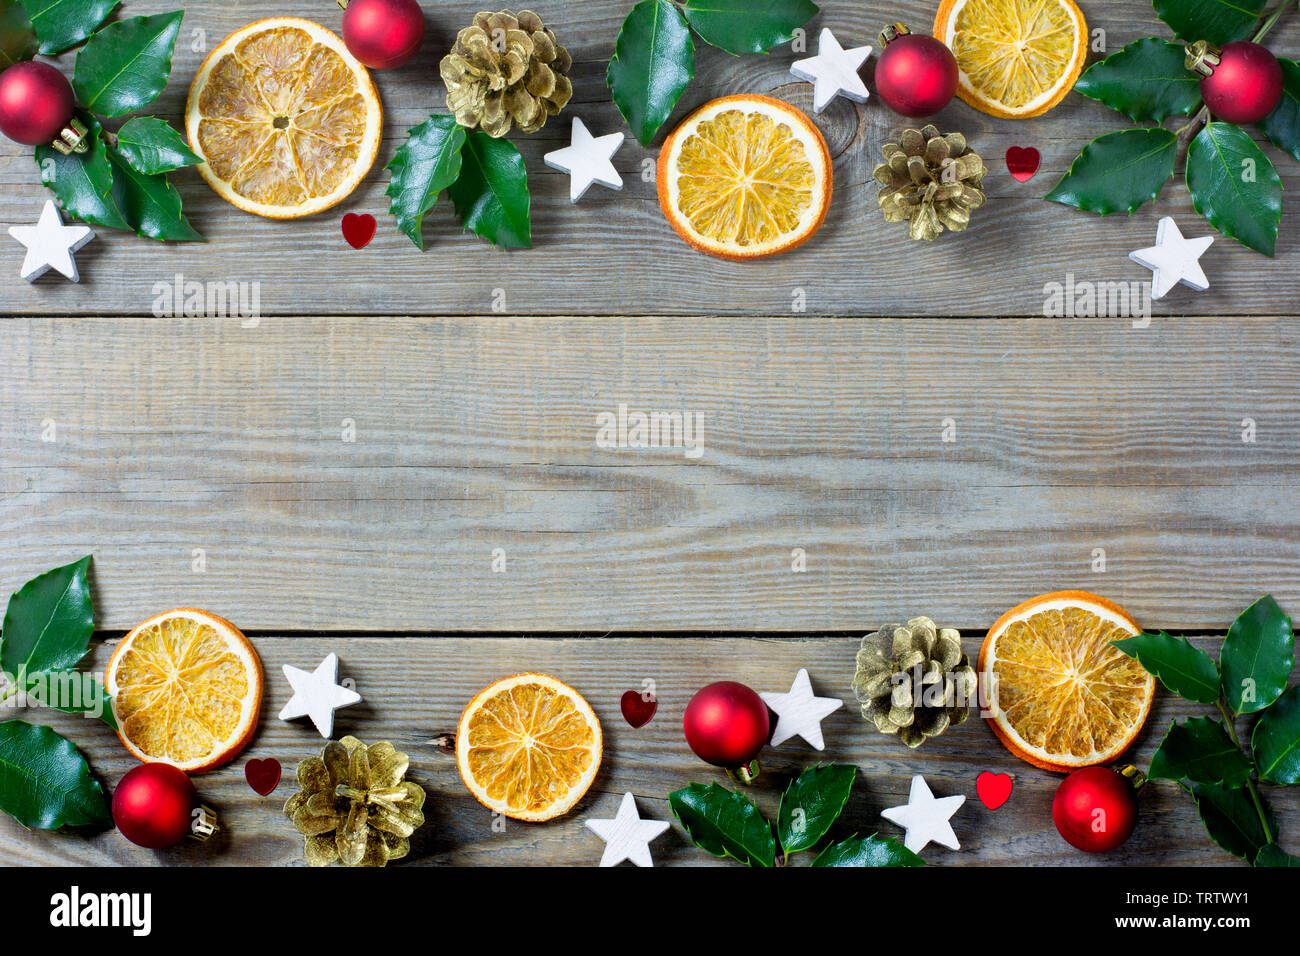 Christmas composition with orange slices, cones, holy, stars, red baubles and small  hearts on wooden background - Stock Image